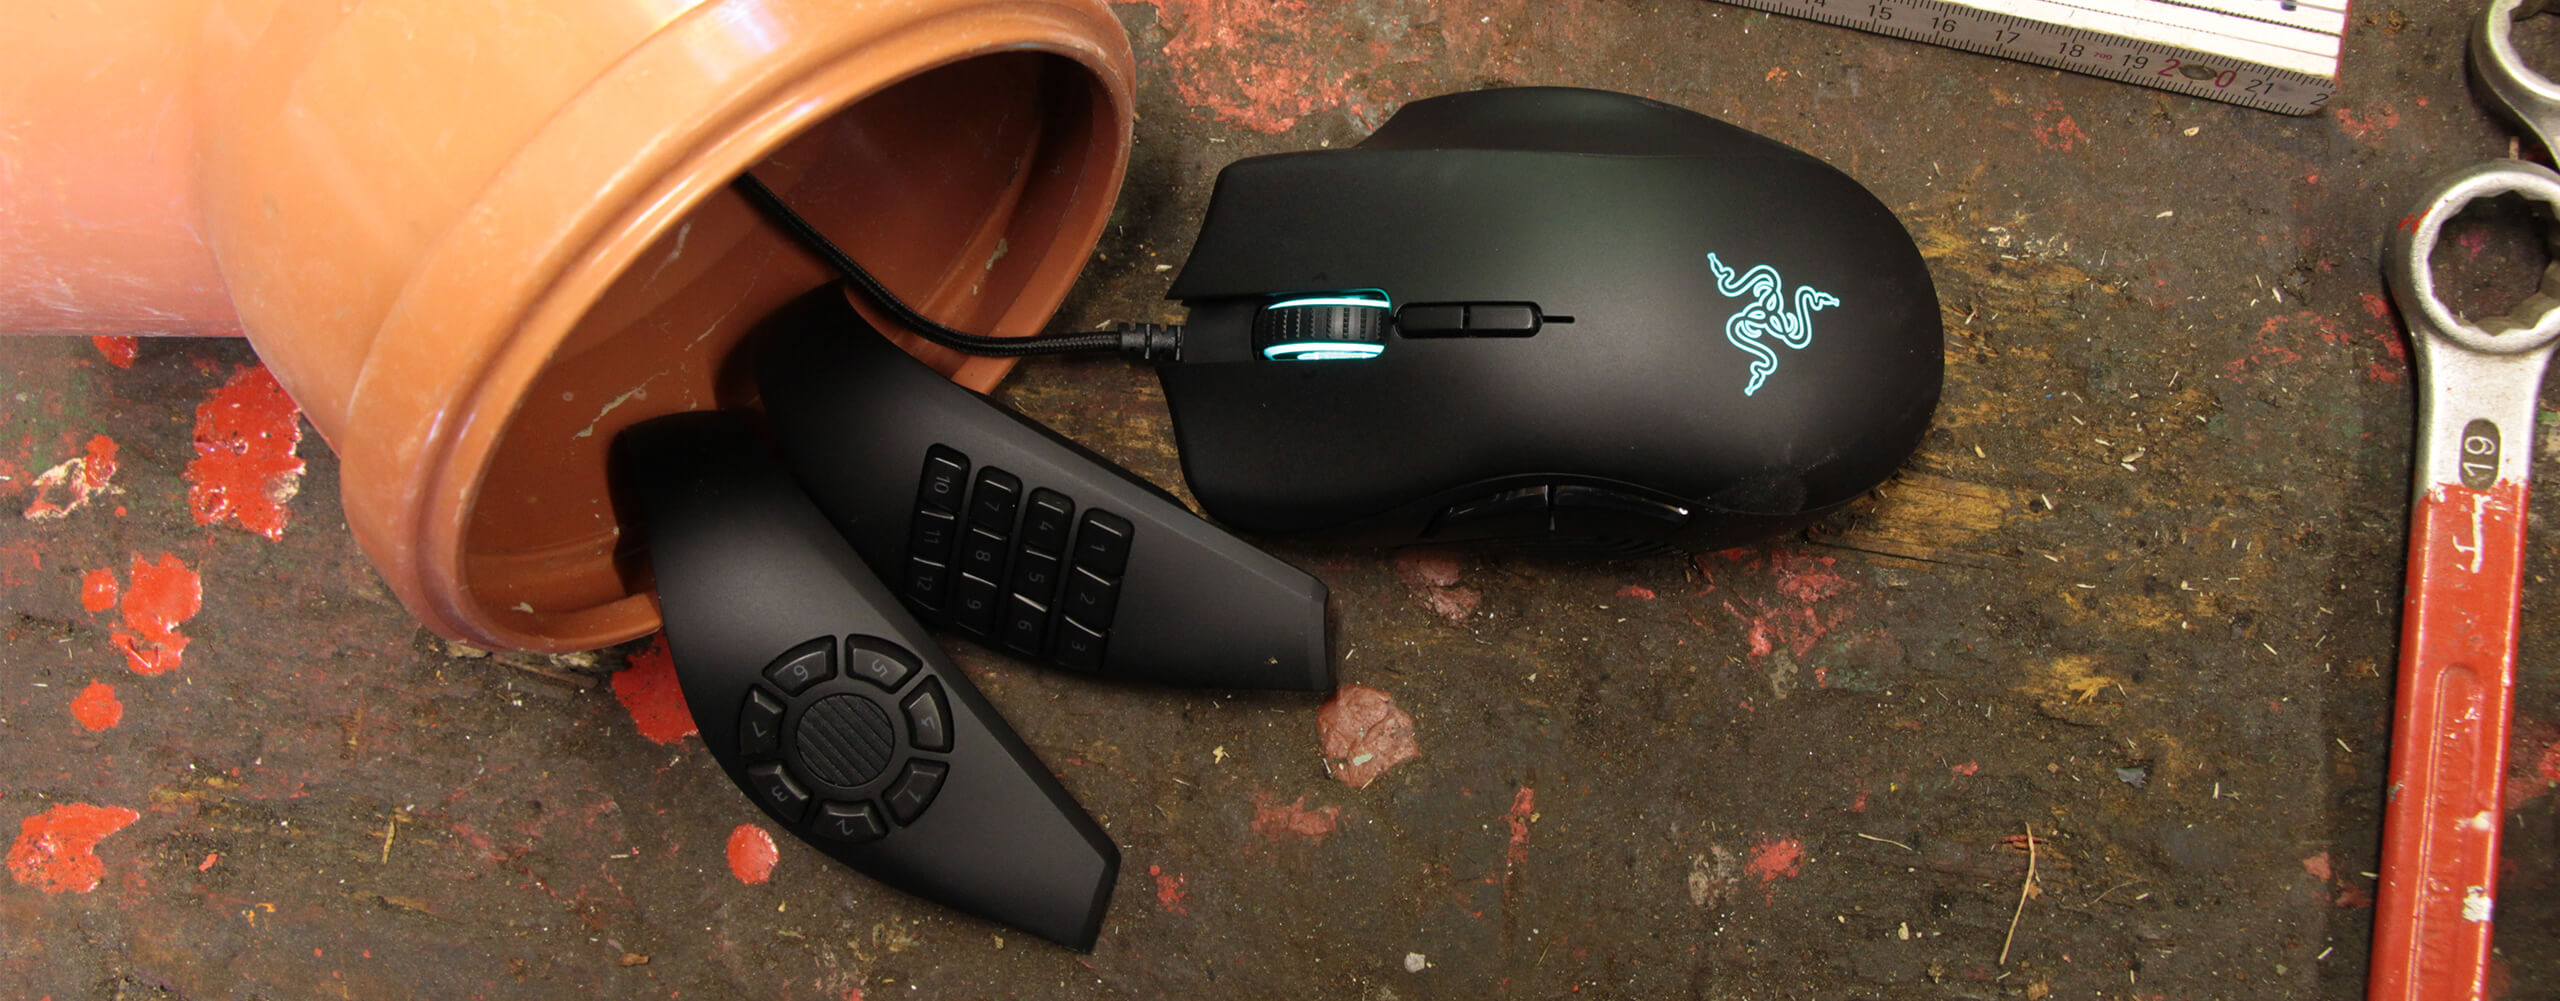 Razer Naga Trinity Test - Outdoor